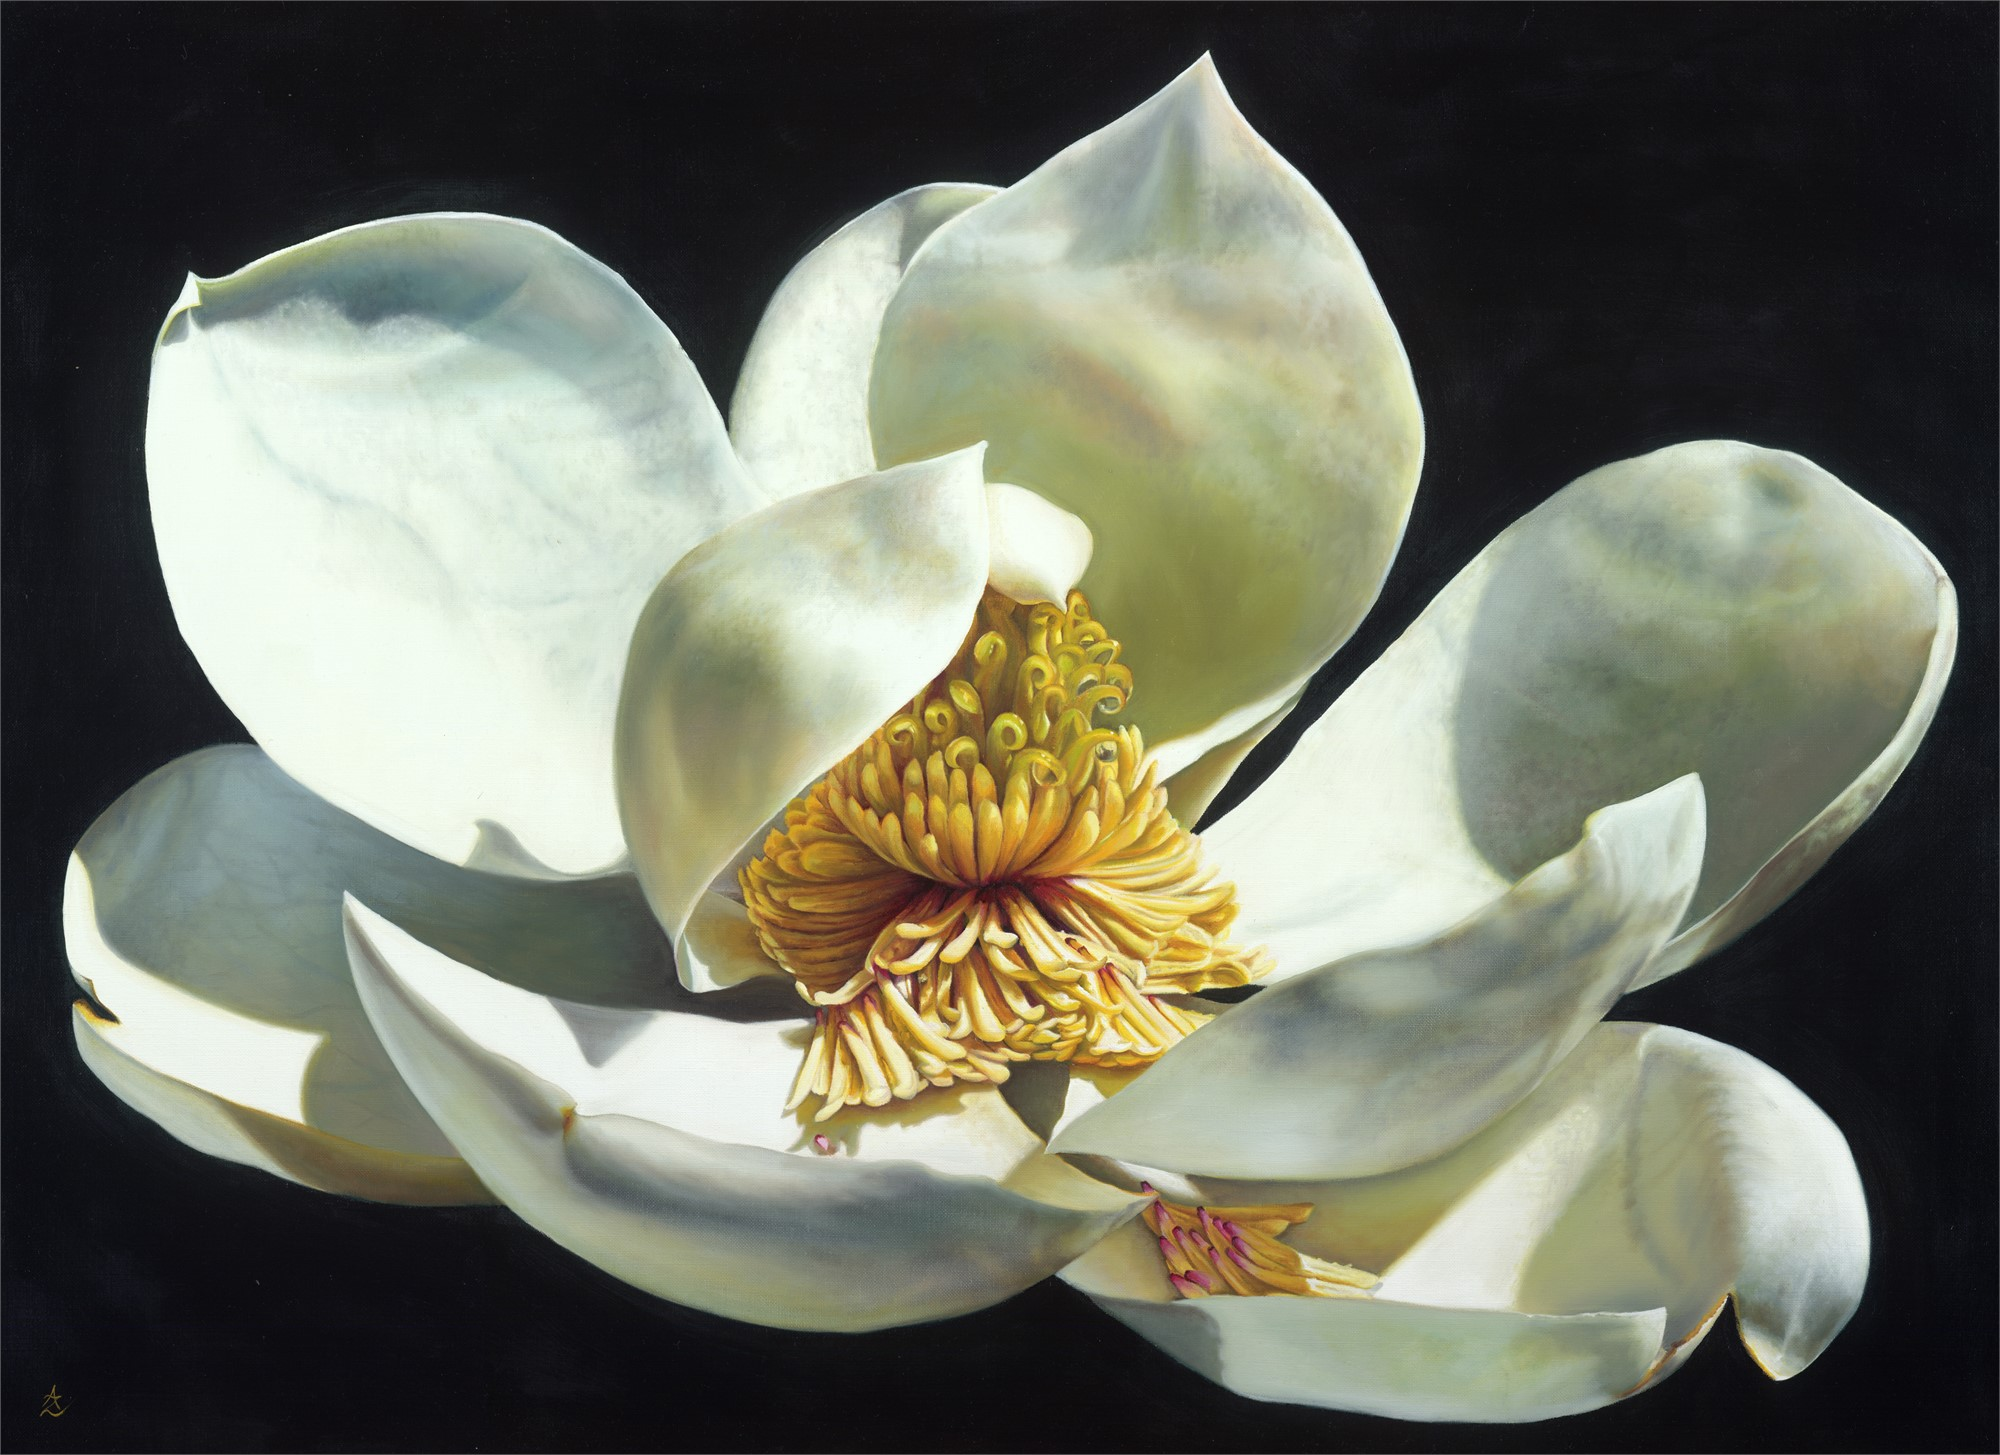 Magnolia Majesty by Anne-Marie Zanetti